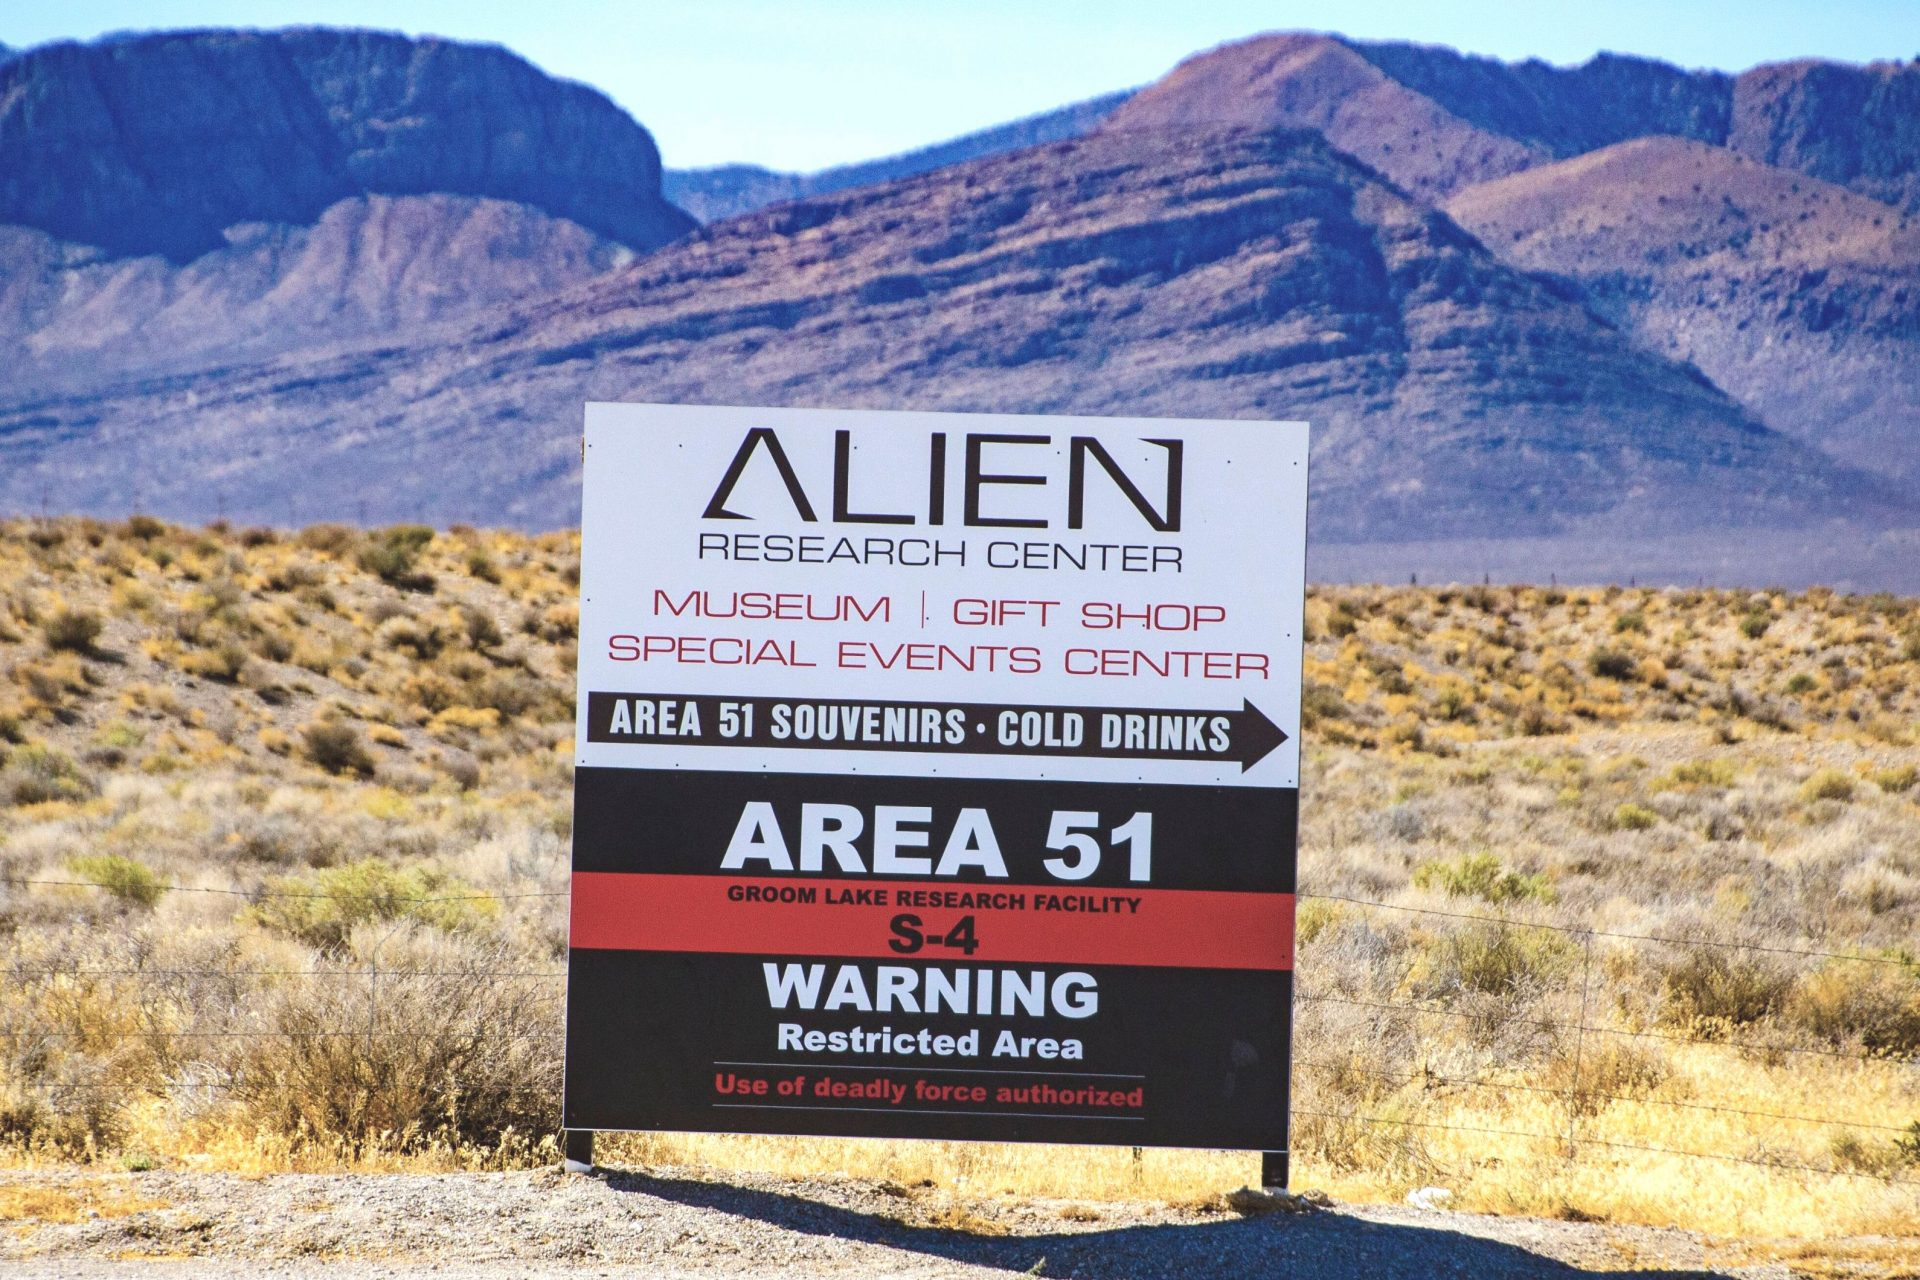 A guide to visiting Area 51: searching for aliens in Nevada